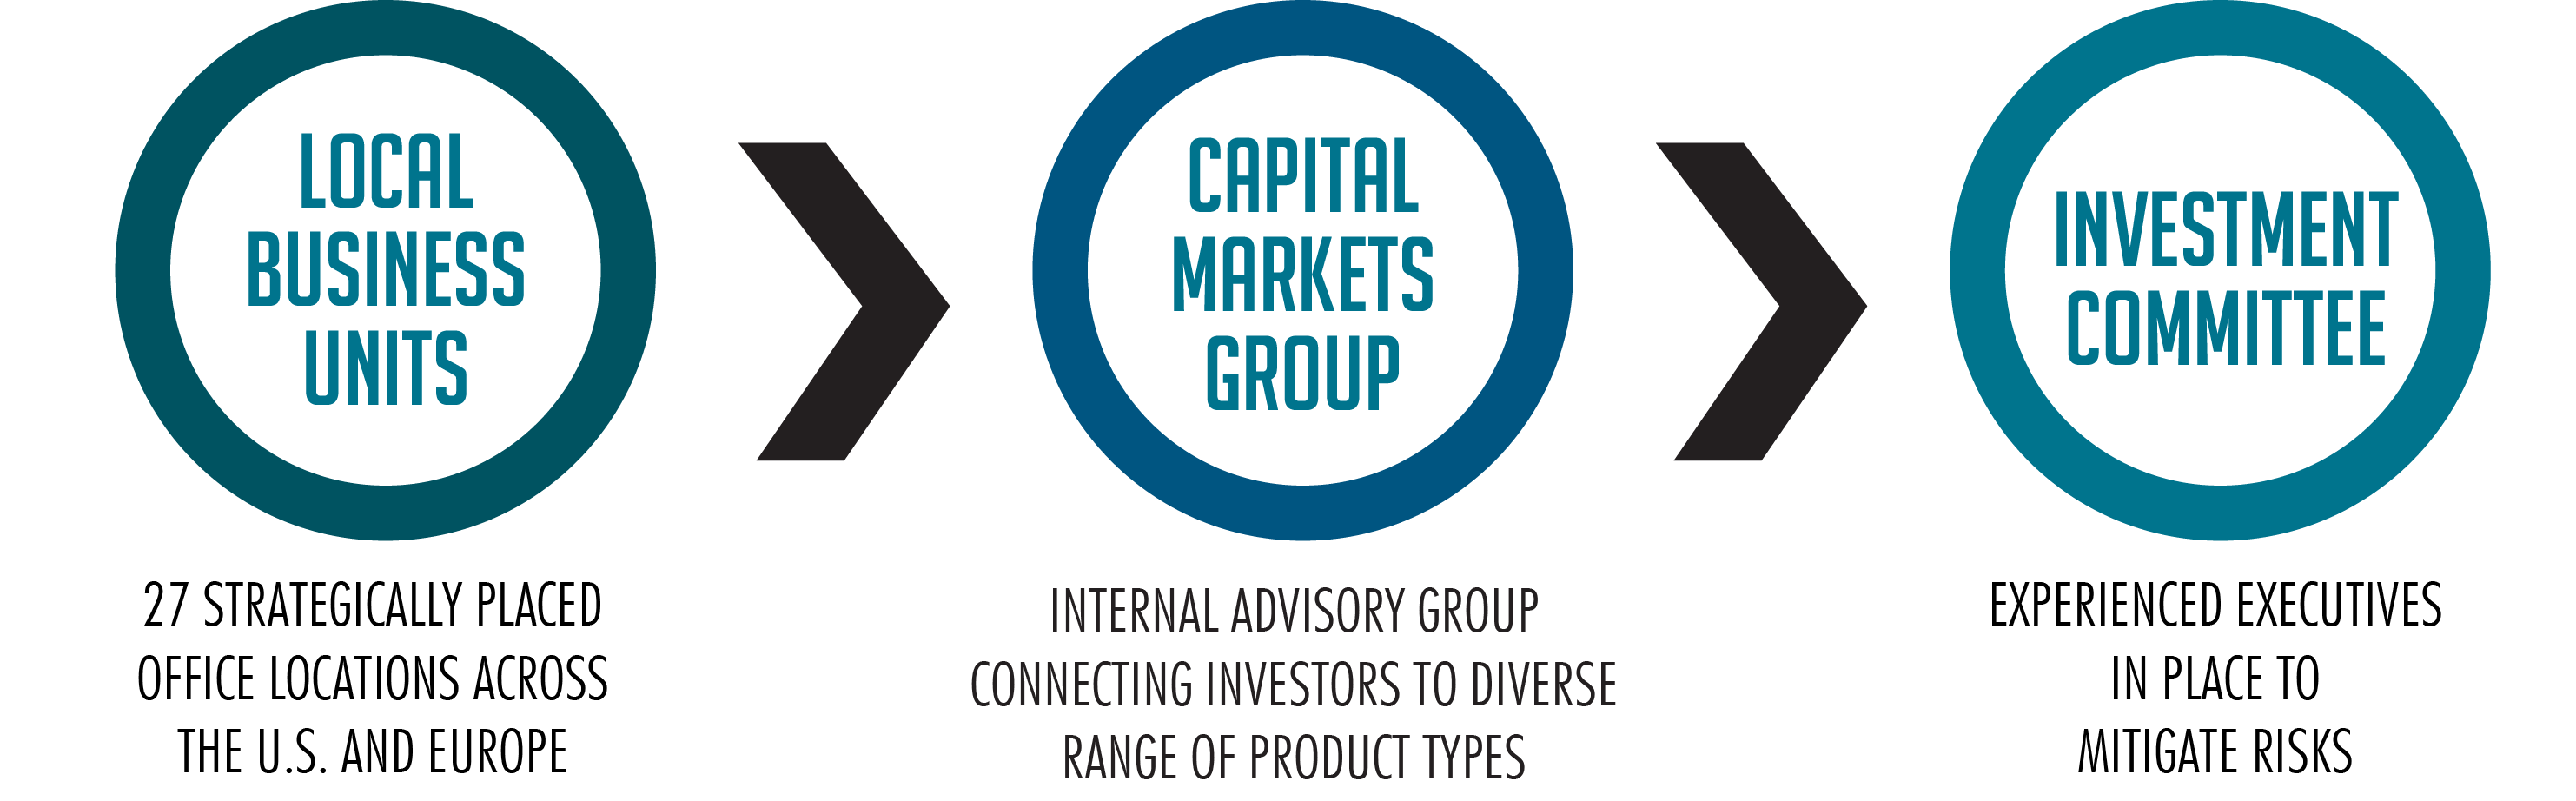 Capital group investment process trade credit relationship-specific investment banker